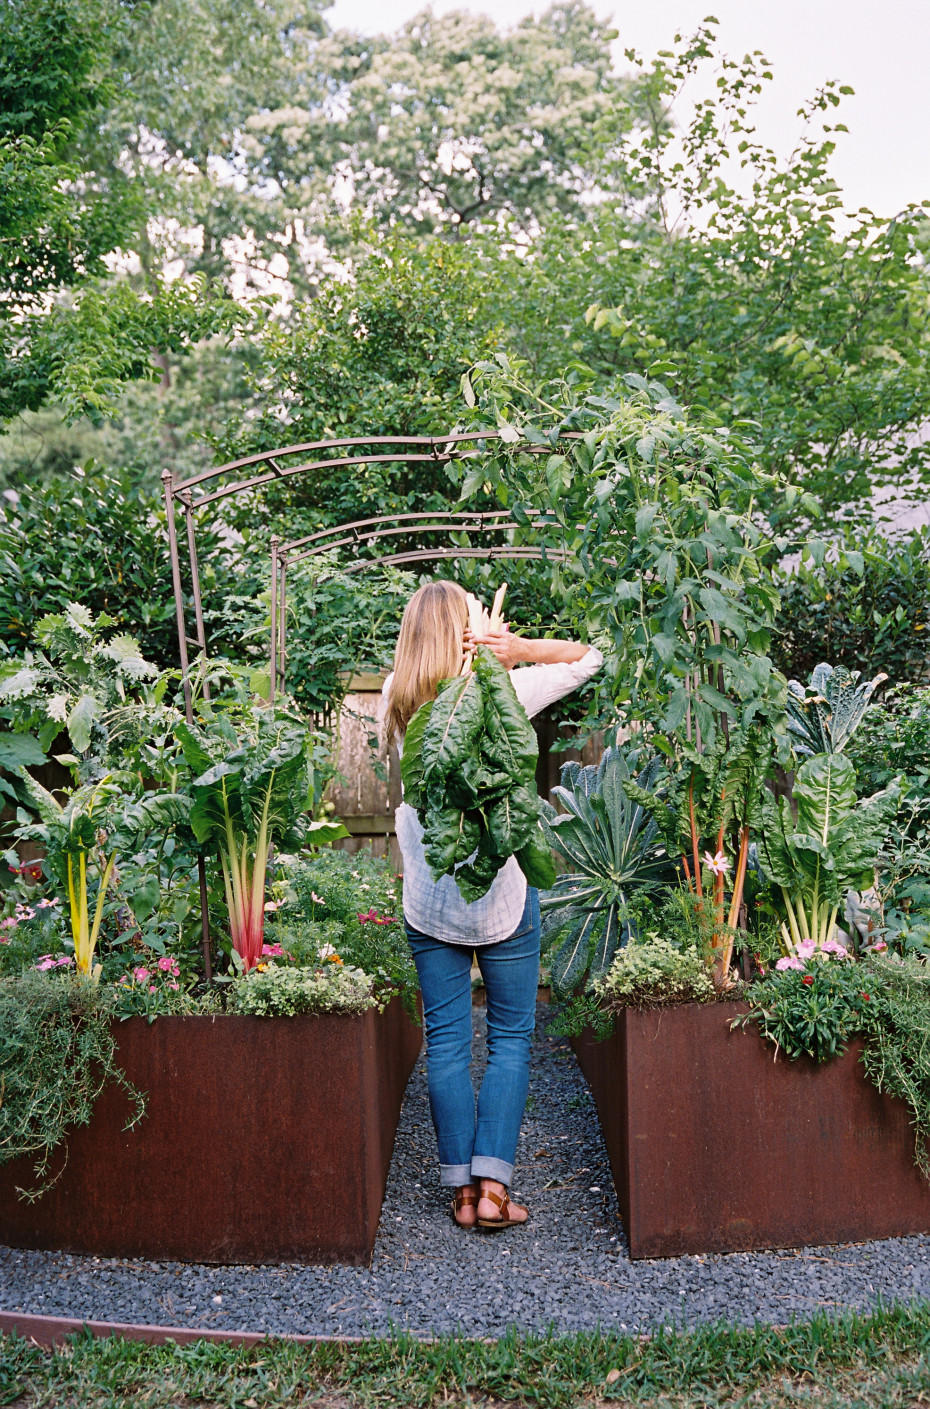 Arch trellis ideas for your kitchen garden pictured is a brown metal arch from Nicole Burke, author of Kitchen Garden Revival